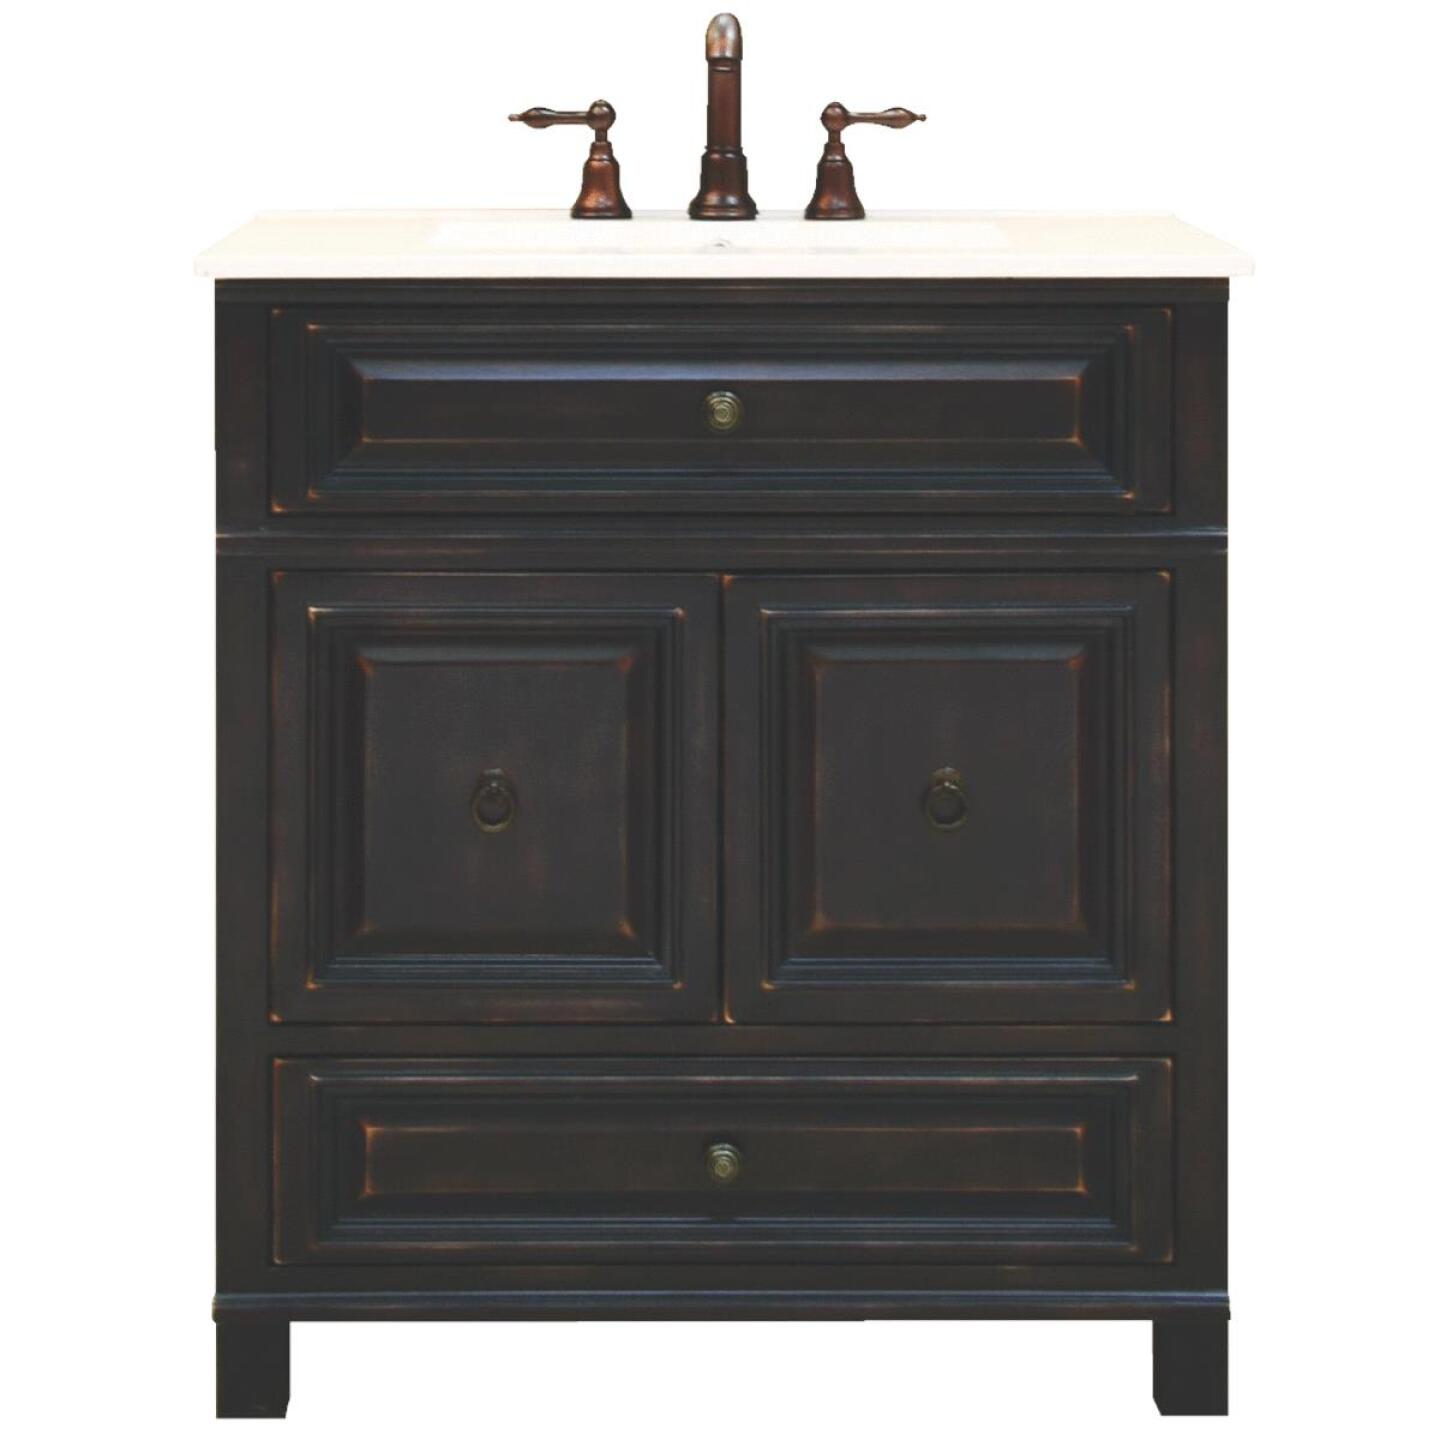 Sunny Wood Barton Hill Black Onyx 30 In. W x 34 In. H x 21 In. D Vanity Base, 2 Door/1 Drawer Image 182